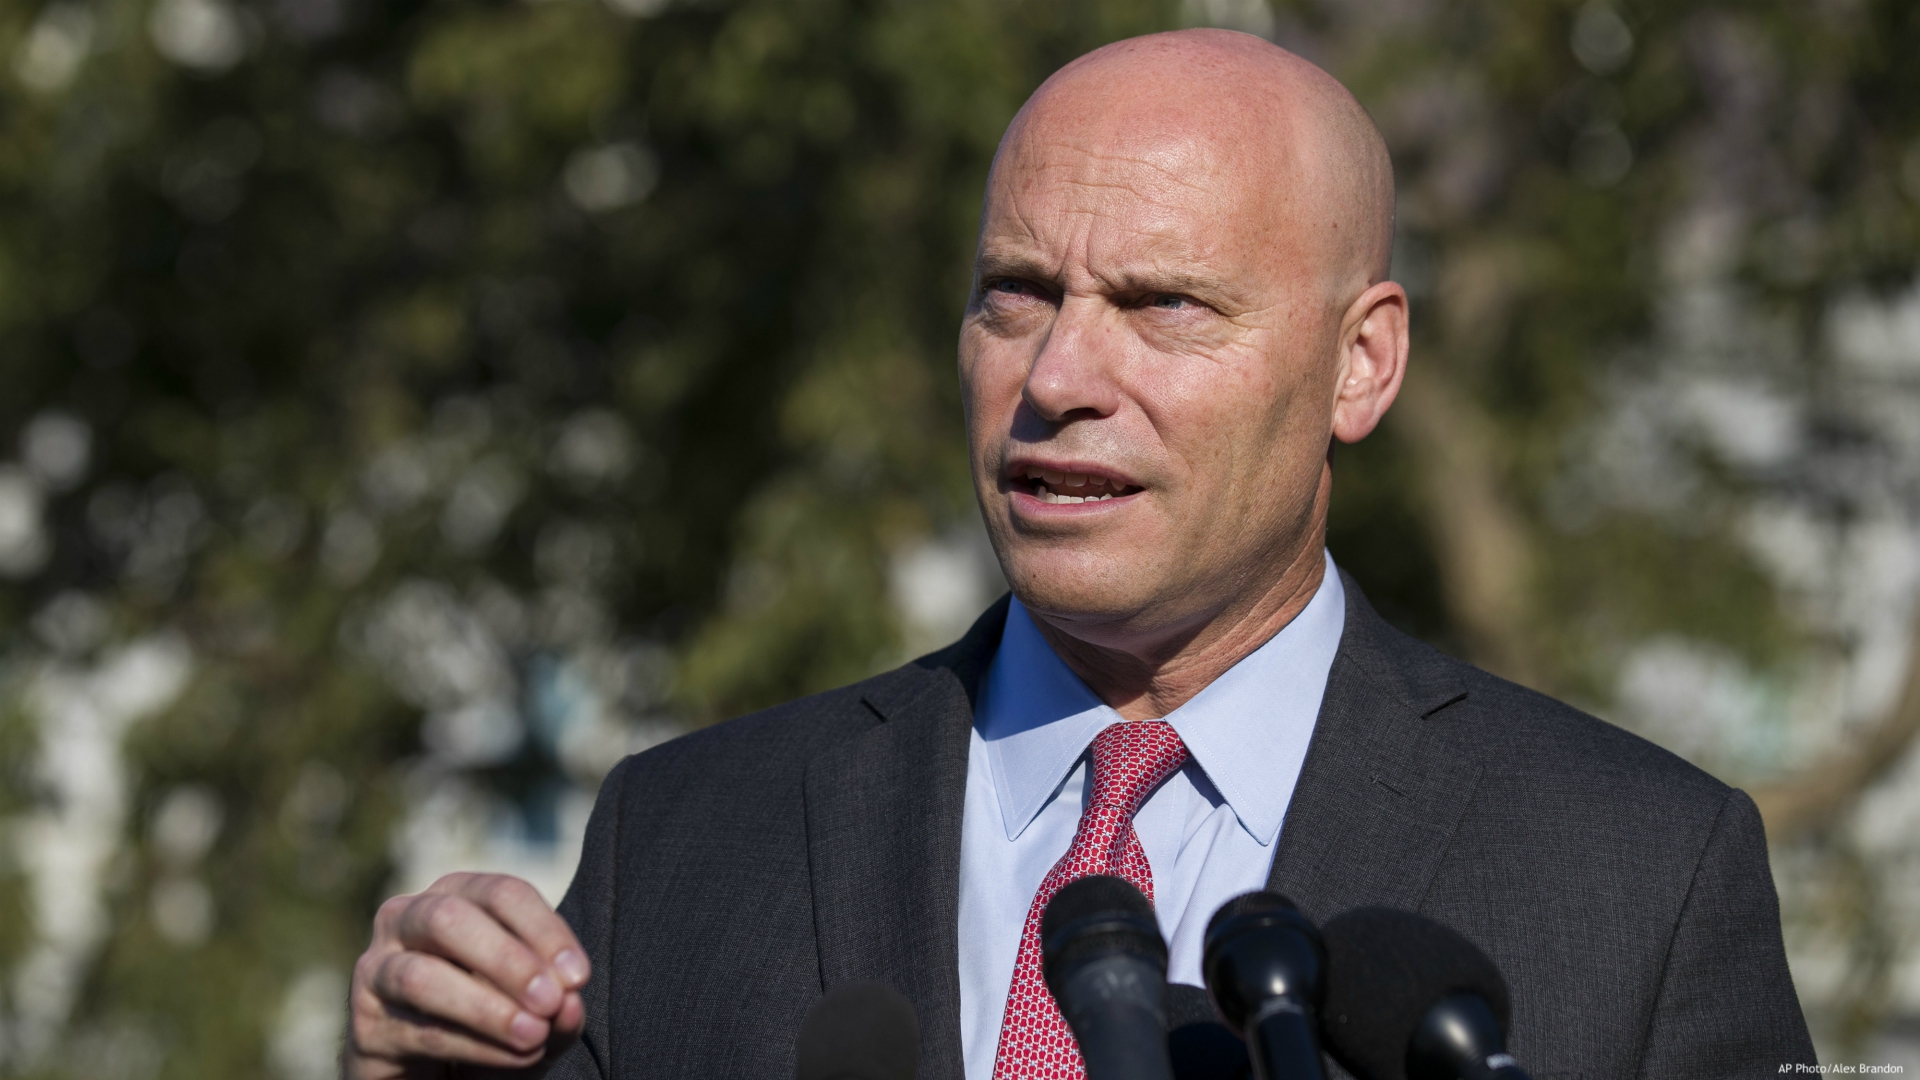 In this Monday, Sept. 16, 2019 file photo, Marc Short, chief of staff for Vice President Mike Pence, speaks with reporters at the White House in Washington. Vice President Mike Pence will maintain an aggressive campaign schedule this week the White House said Saturday, Oct. 24, 2020 despite his exposure to Marc Short, his chief of staff who tested positive for the coronavirus. (AP Photo/Alex Brandon)